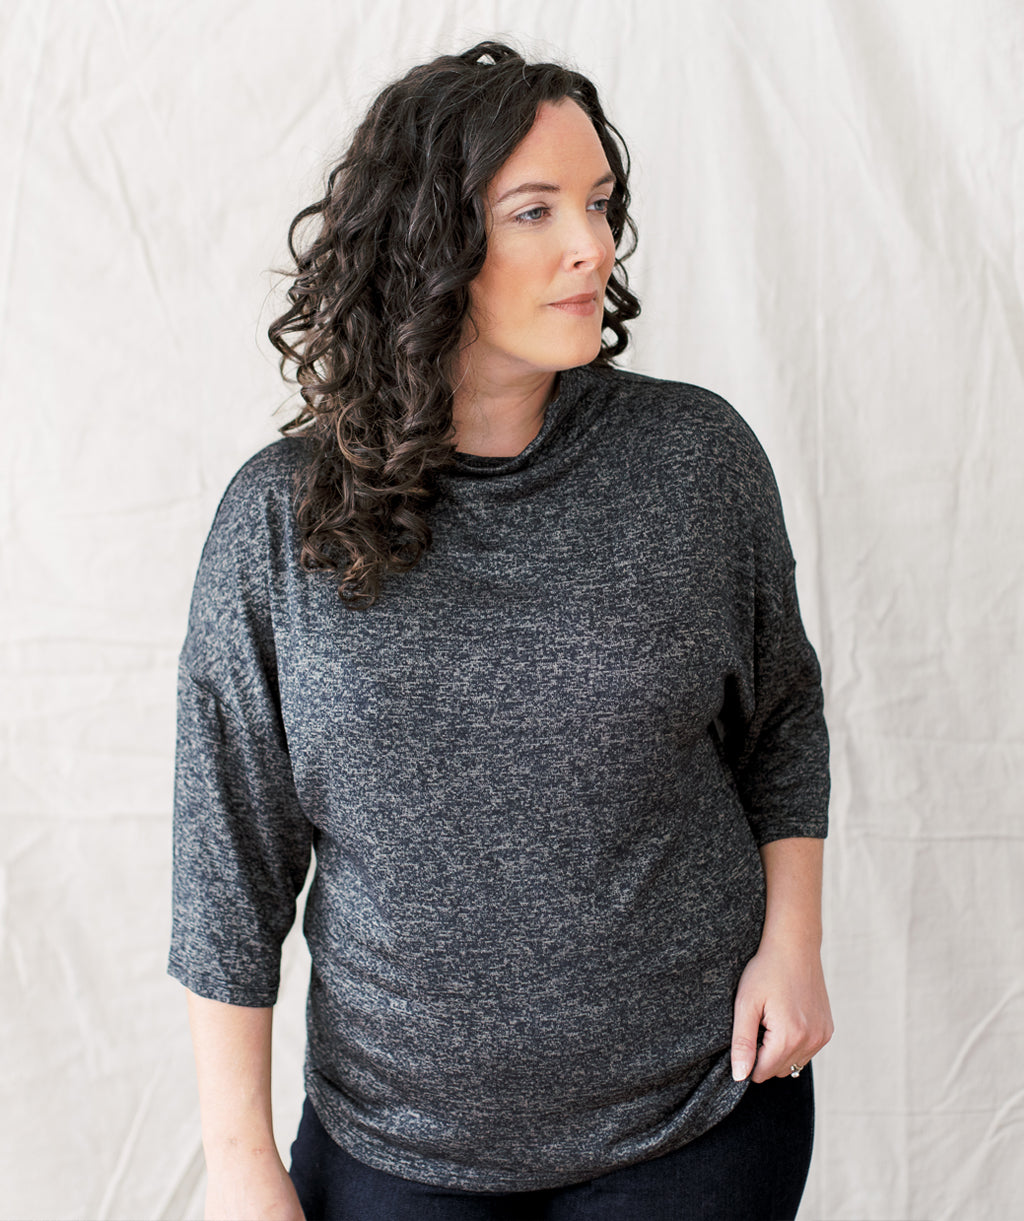 BETHANY top in Black/Cocoa